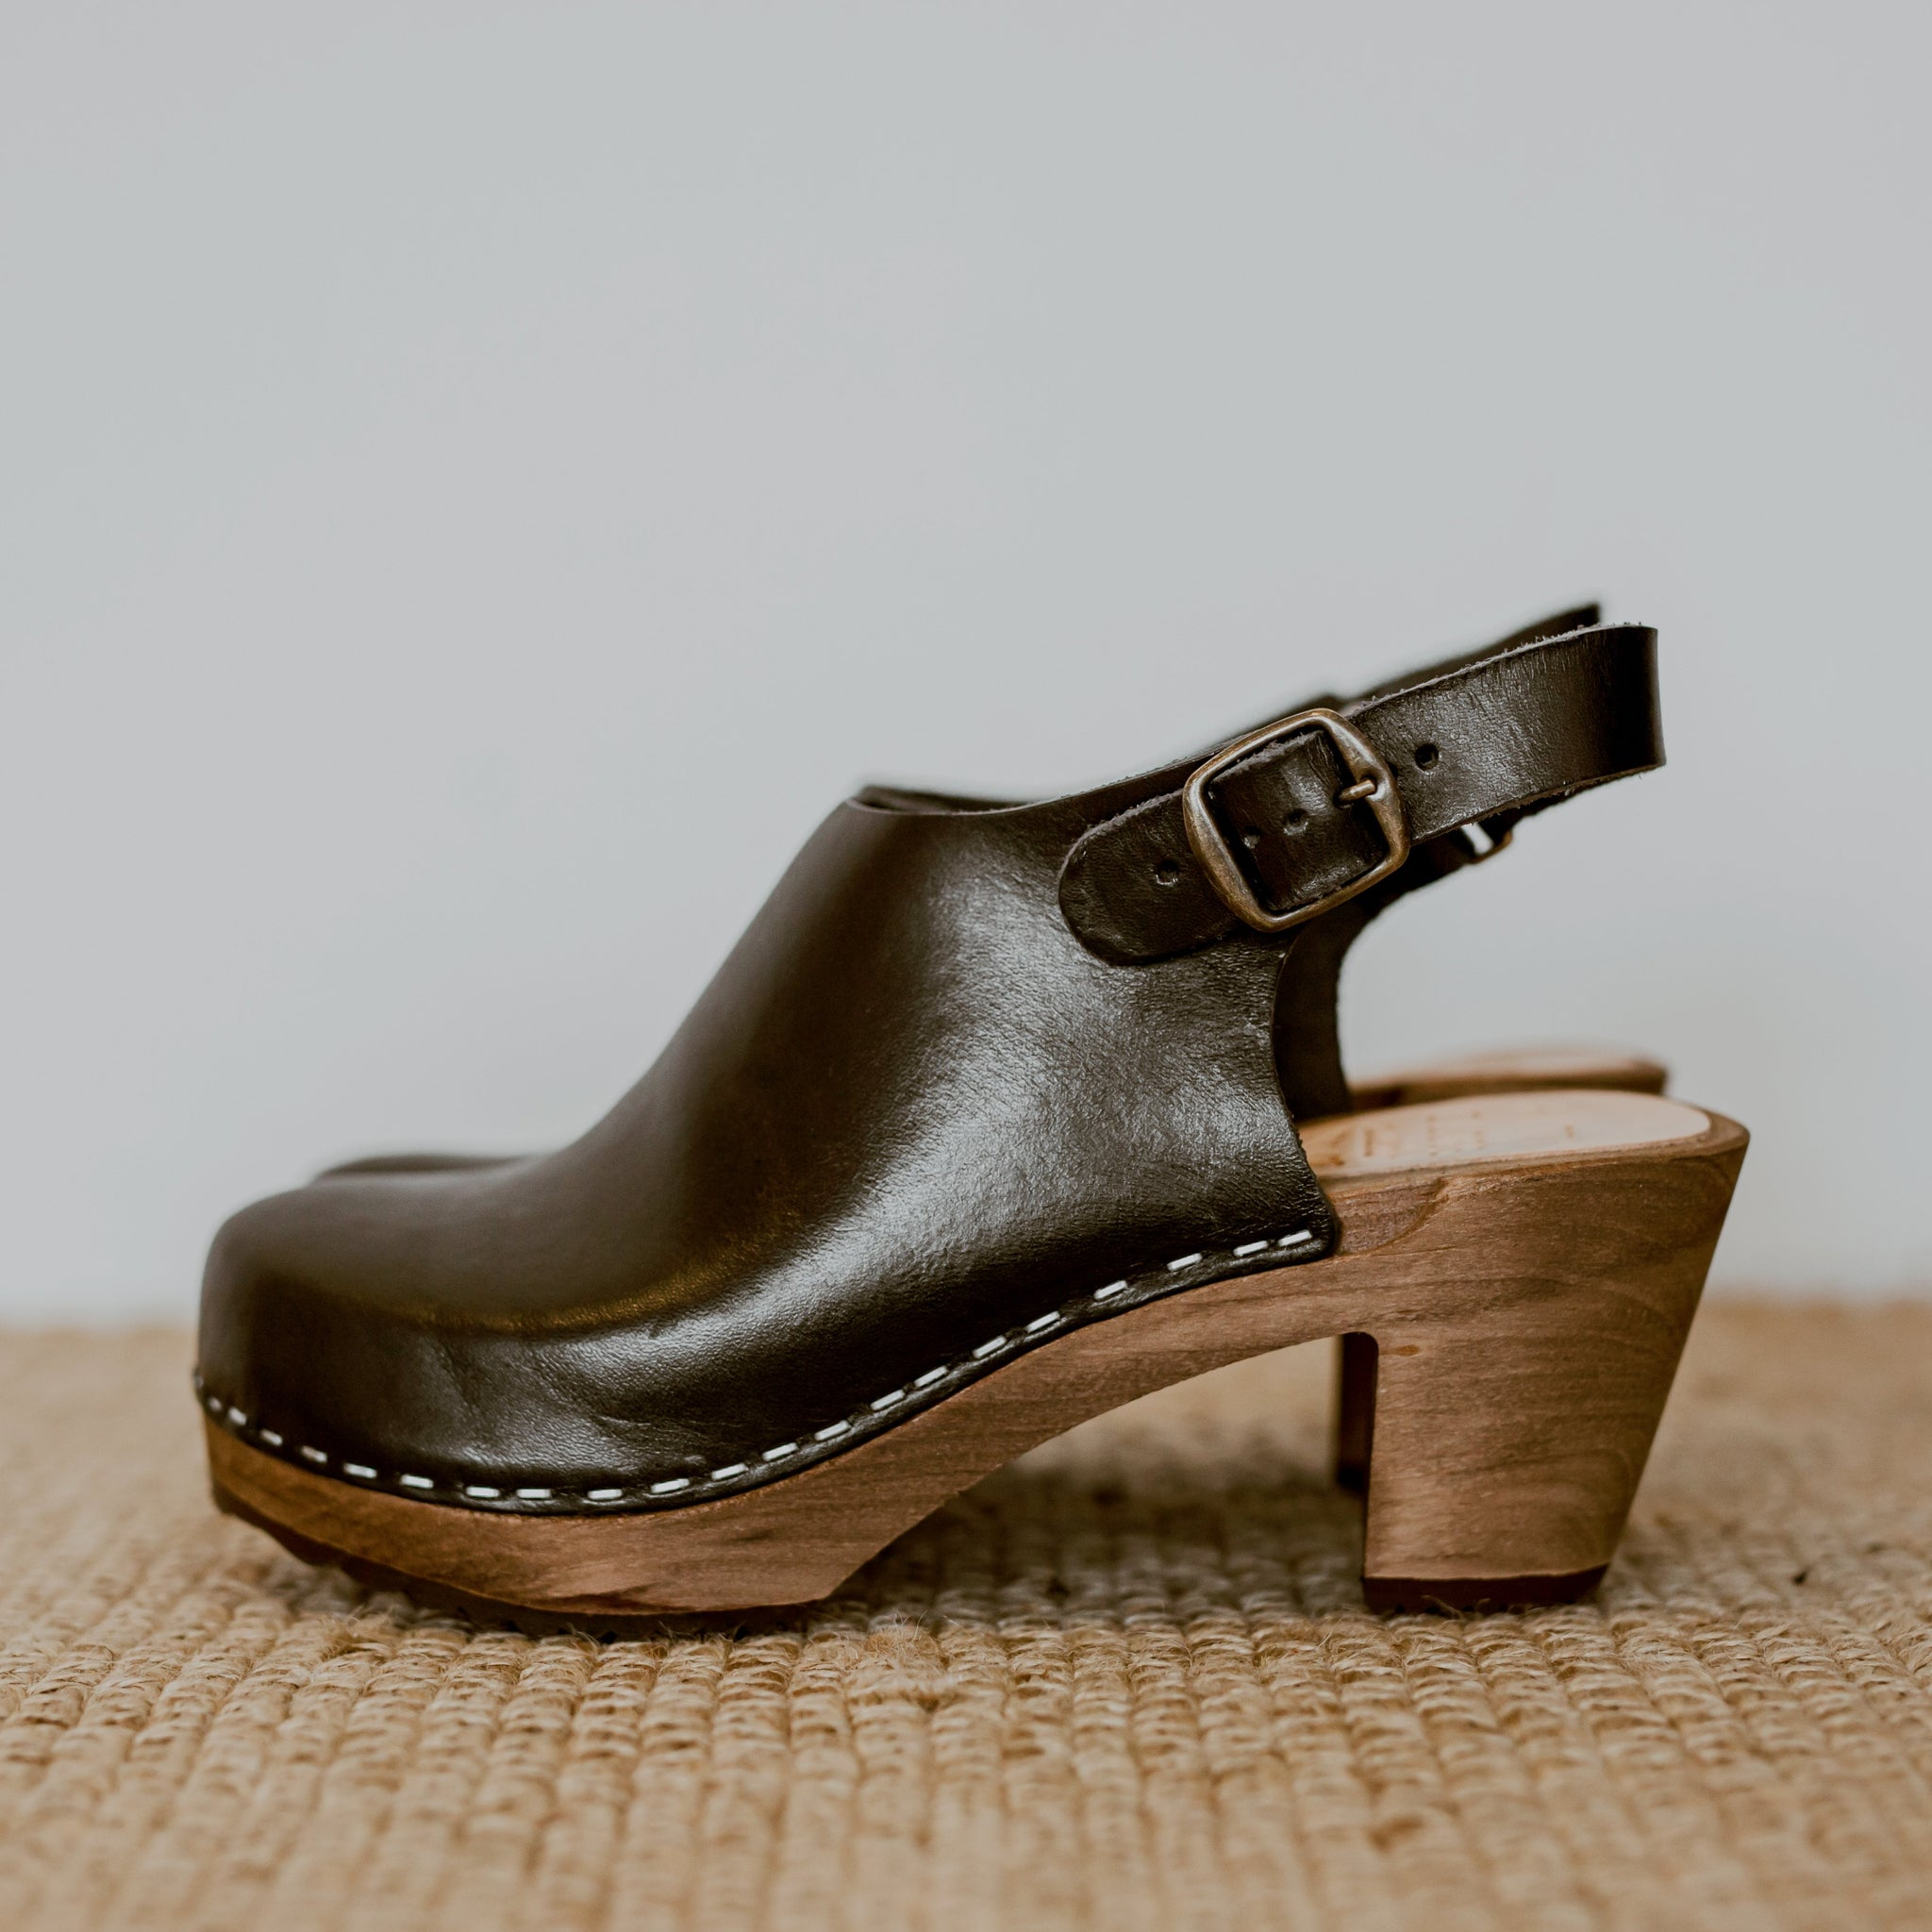 onyx black classic style swedish clog with a mid heel and a strap to the back